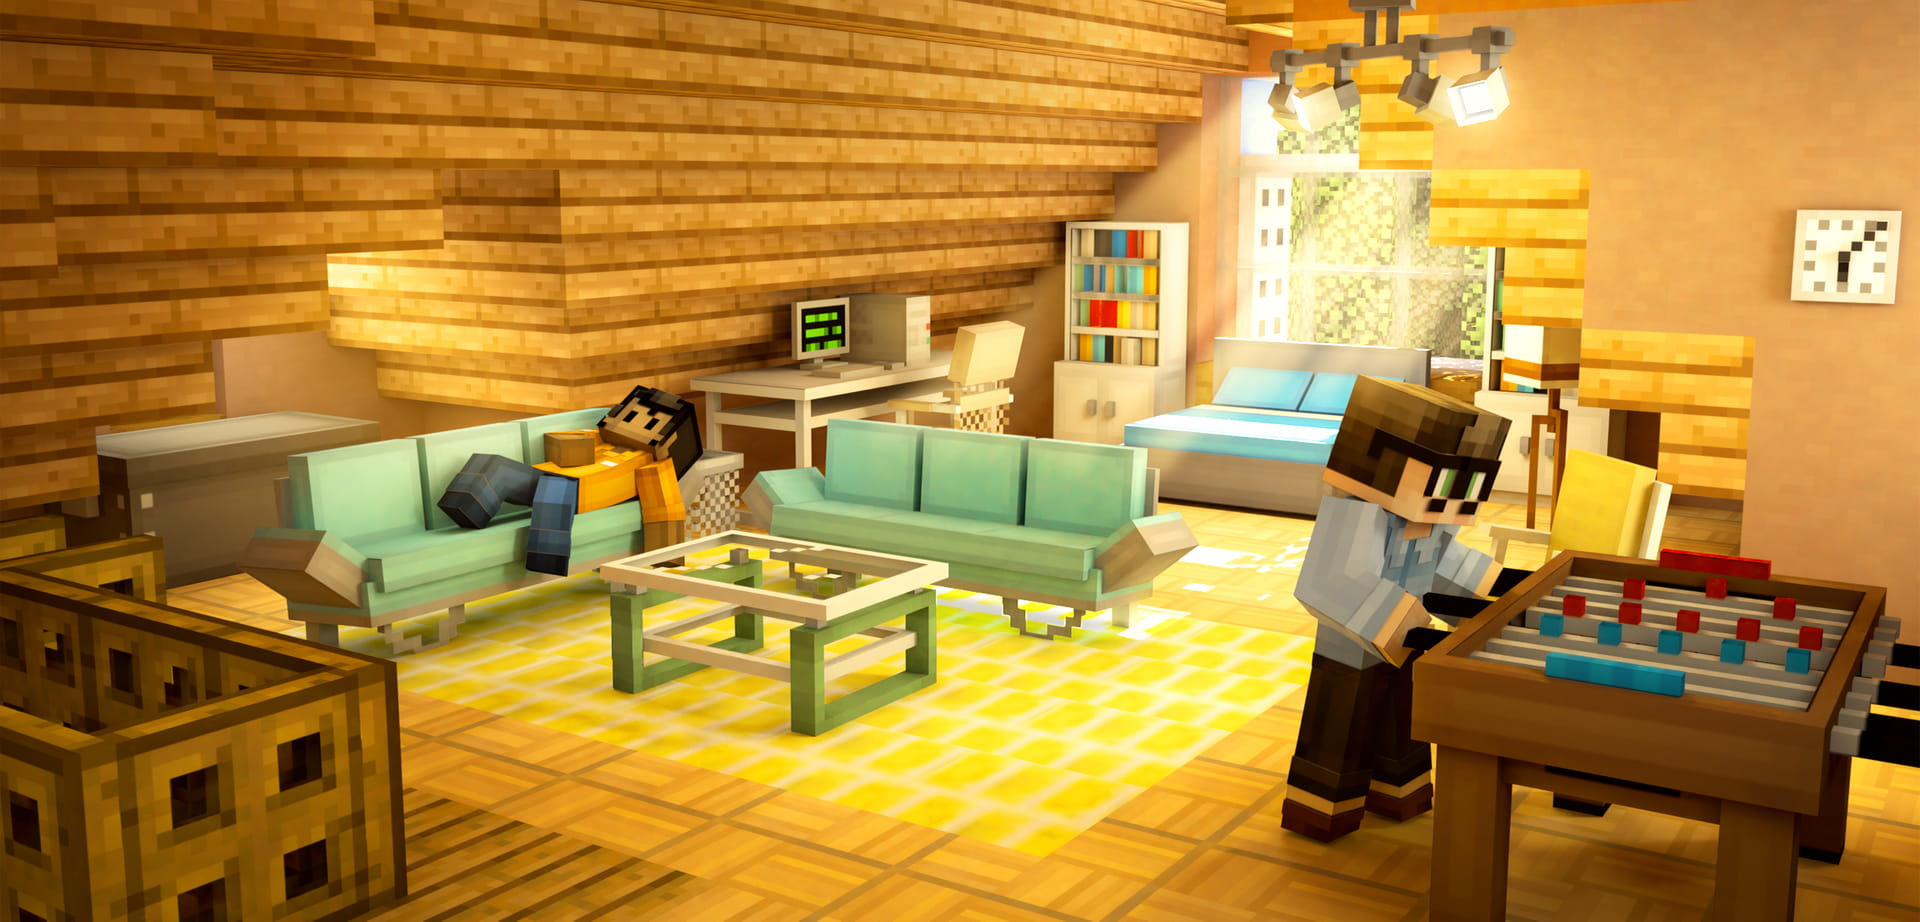 Furniture Mod Spark Squared Minecraft Buildteam